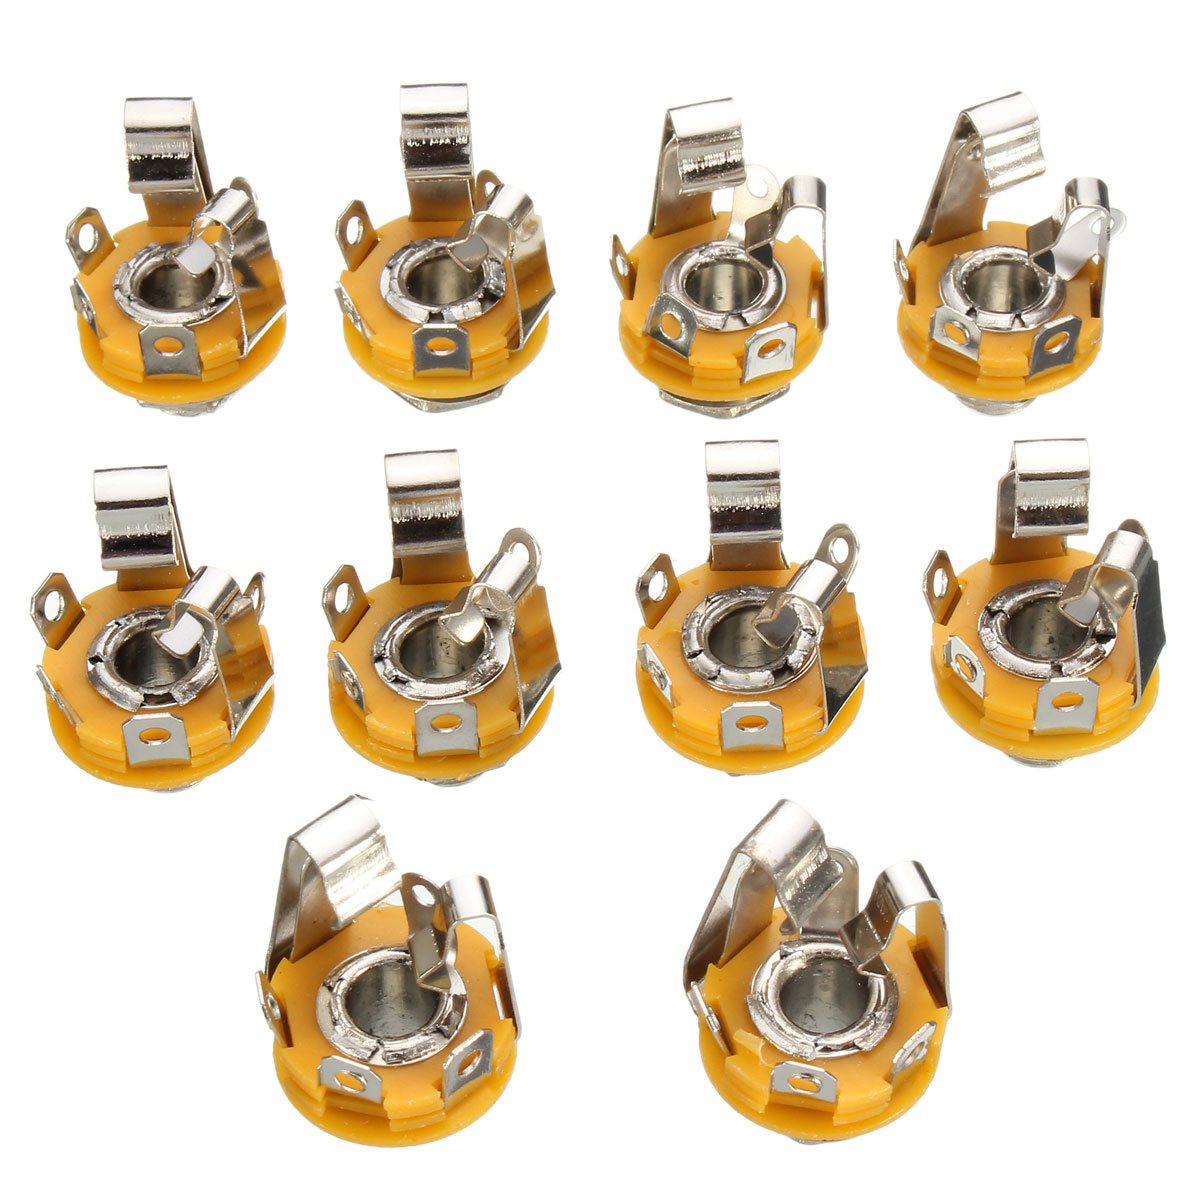 1 4 Female Jack Wiring Explained Diagrams Guitar Input Lot 10pcs 6 35mm Stereo Socket Connector Panel